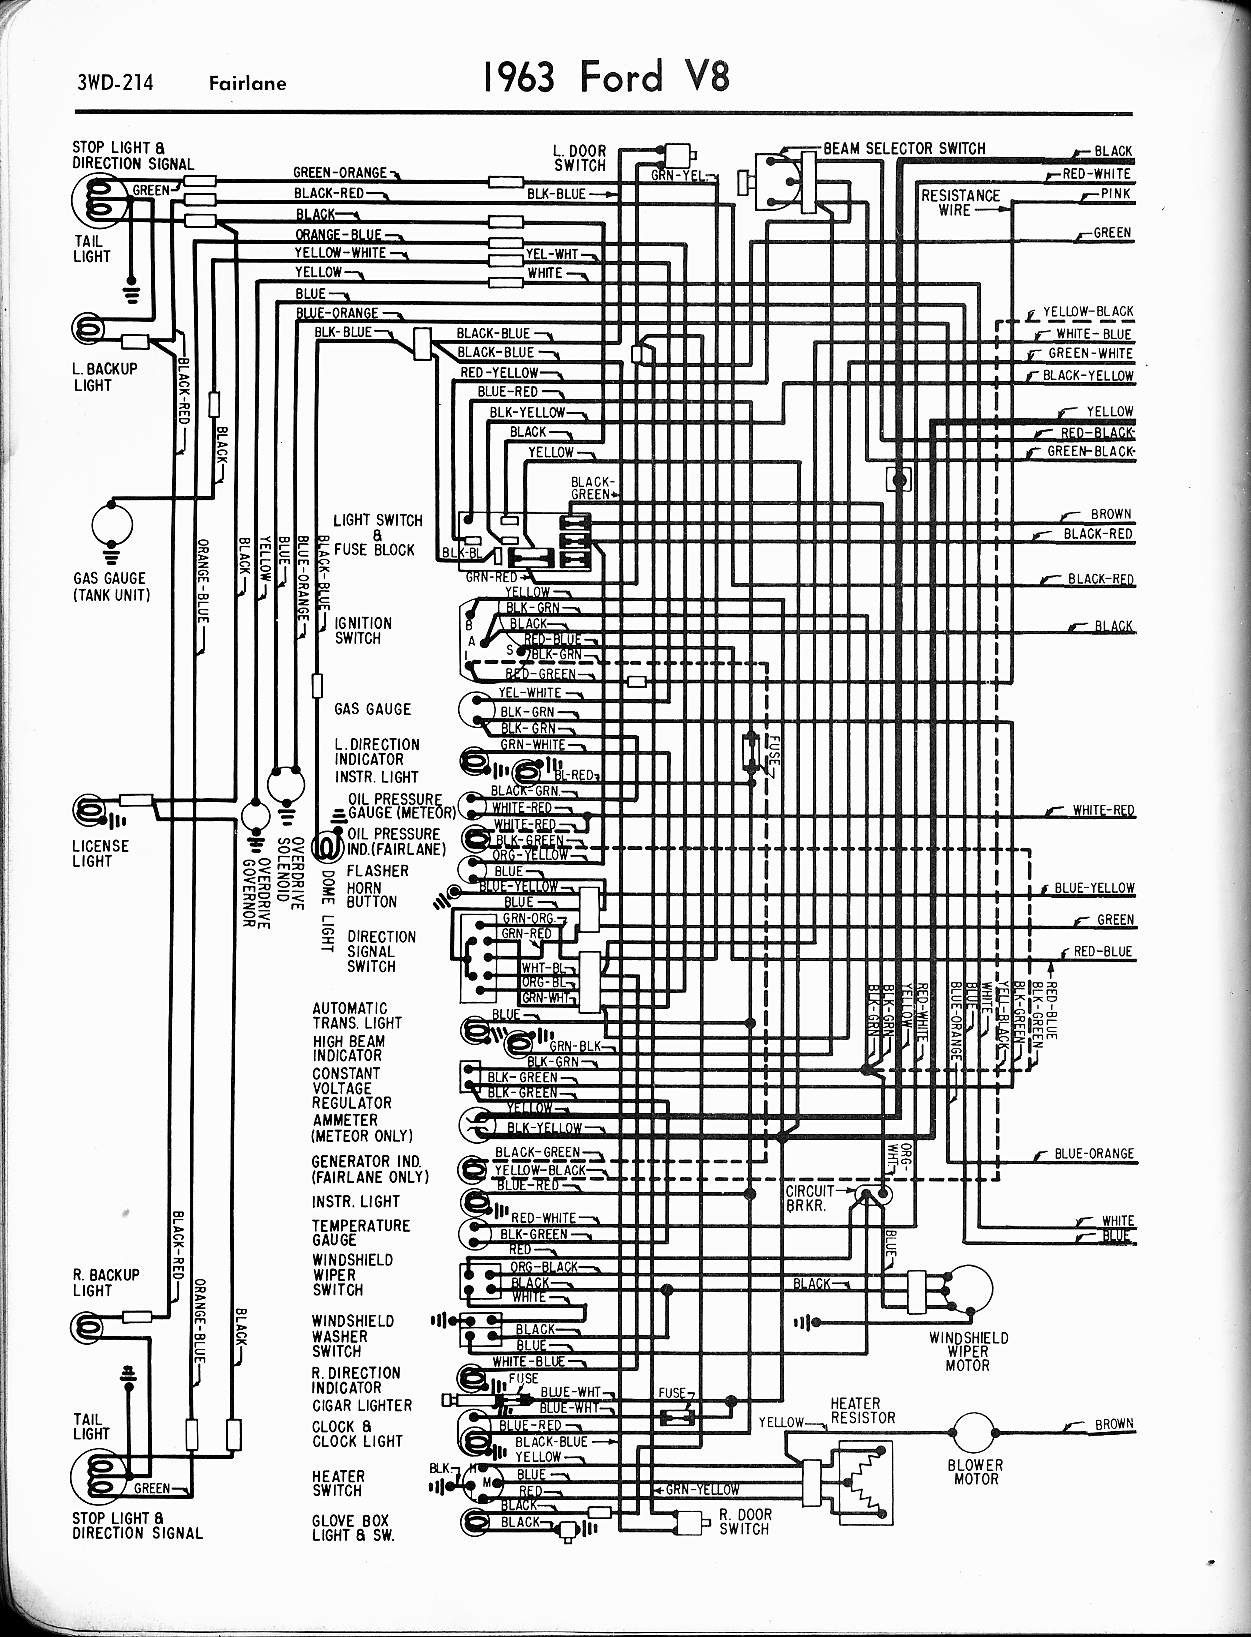 1963 Ford Wiring Diagram List Of Schematic Circuit Tractor Radio Harness Fairlane Starting Know About U2022 Rh Prezzy Co 2000 Econoline